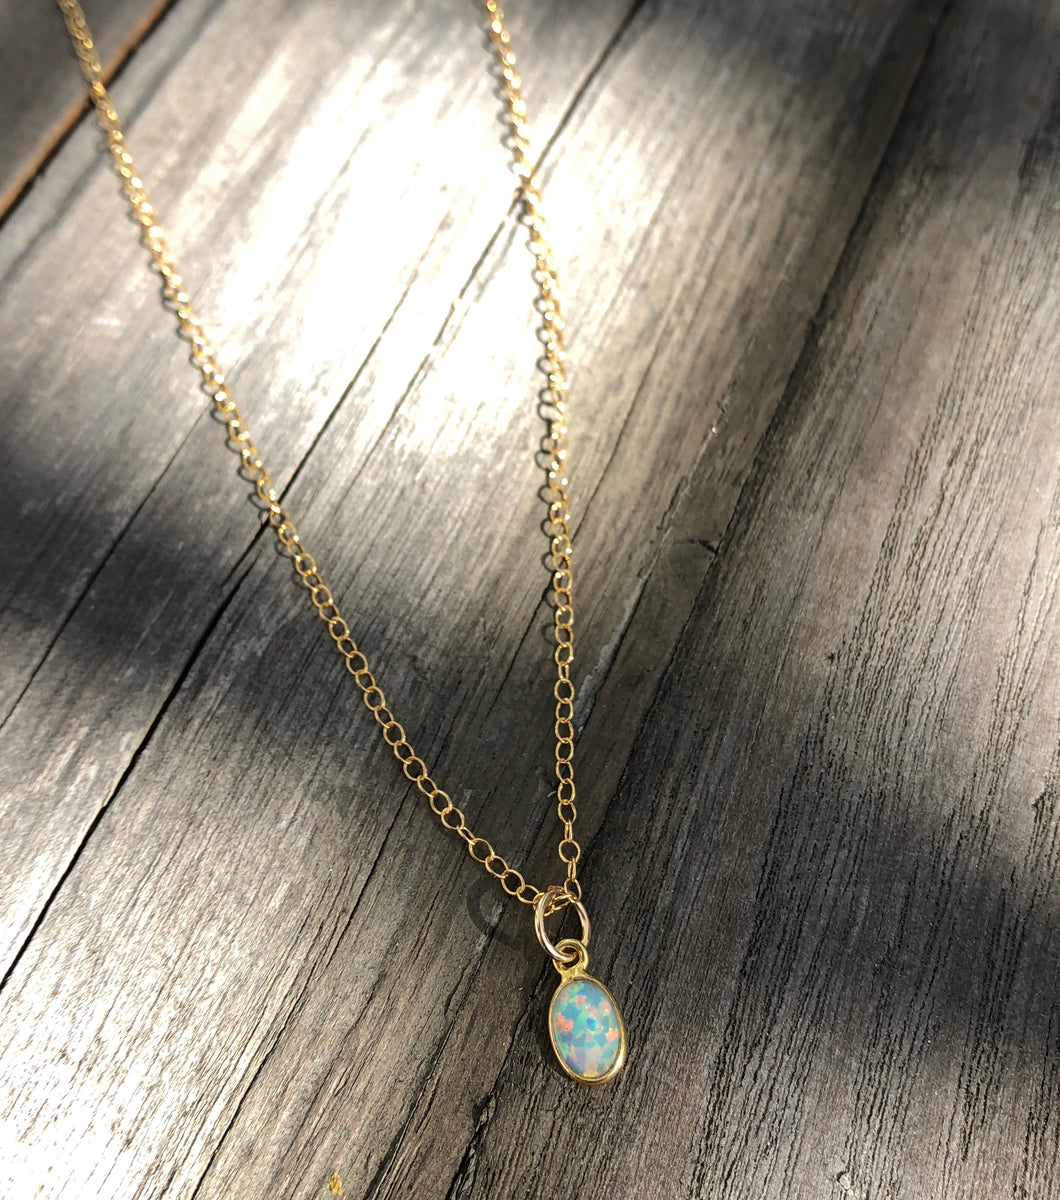 Tiny oval opal on 16inch 24k Gold fill chain